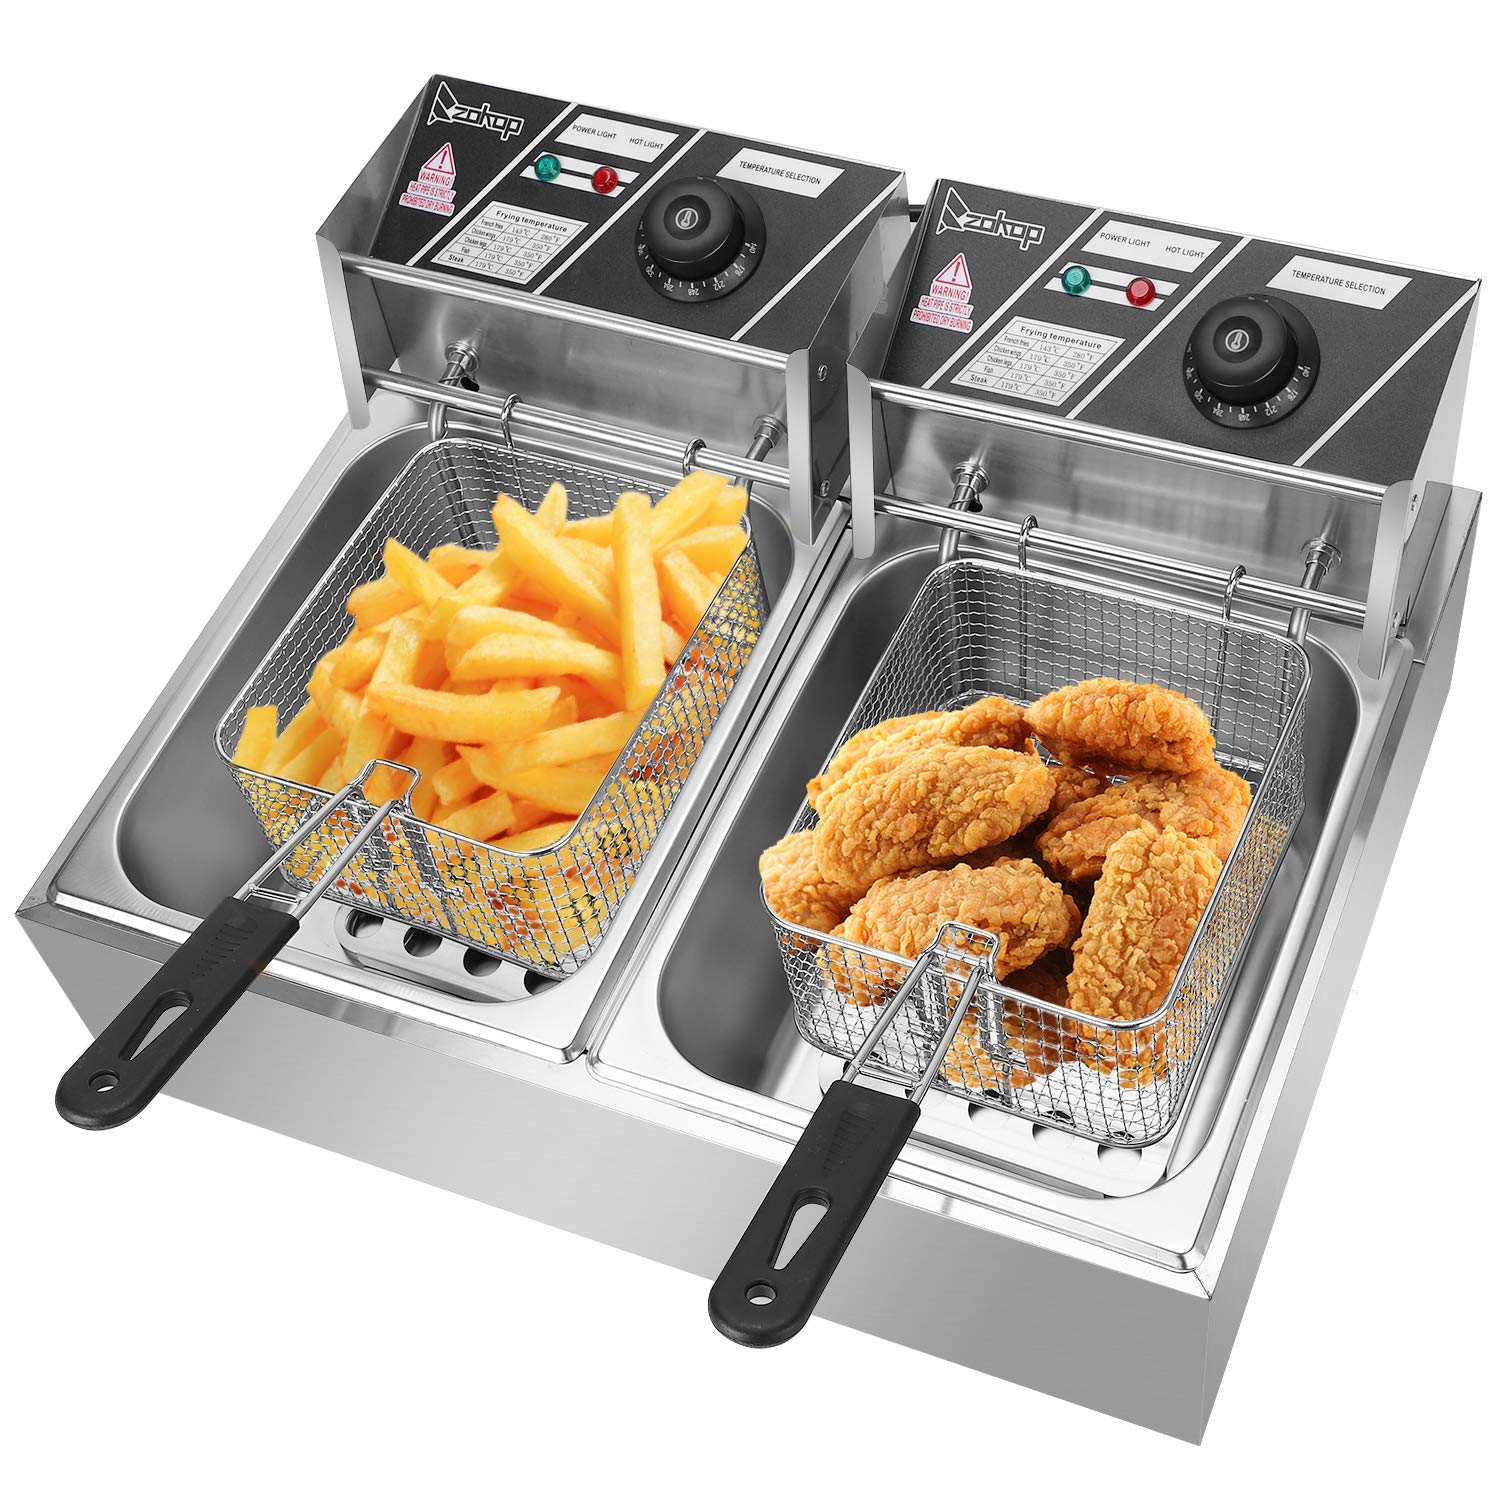 ZOKOP Electric Fryer,12L Commercial Electric Countertop Stainless Steel Deep Fryer Basket French Fry Restaurant Home Kitchen